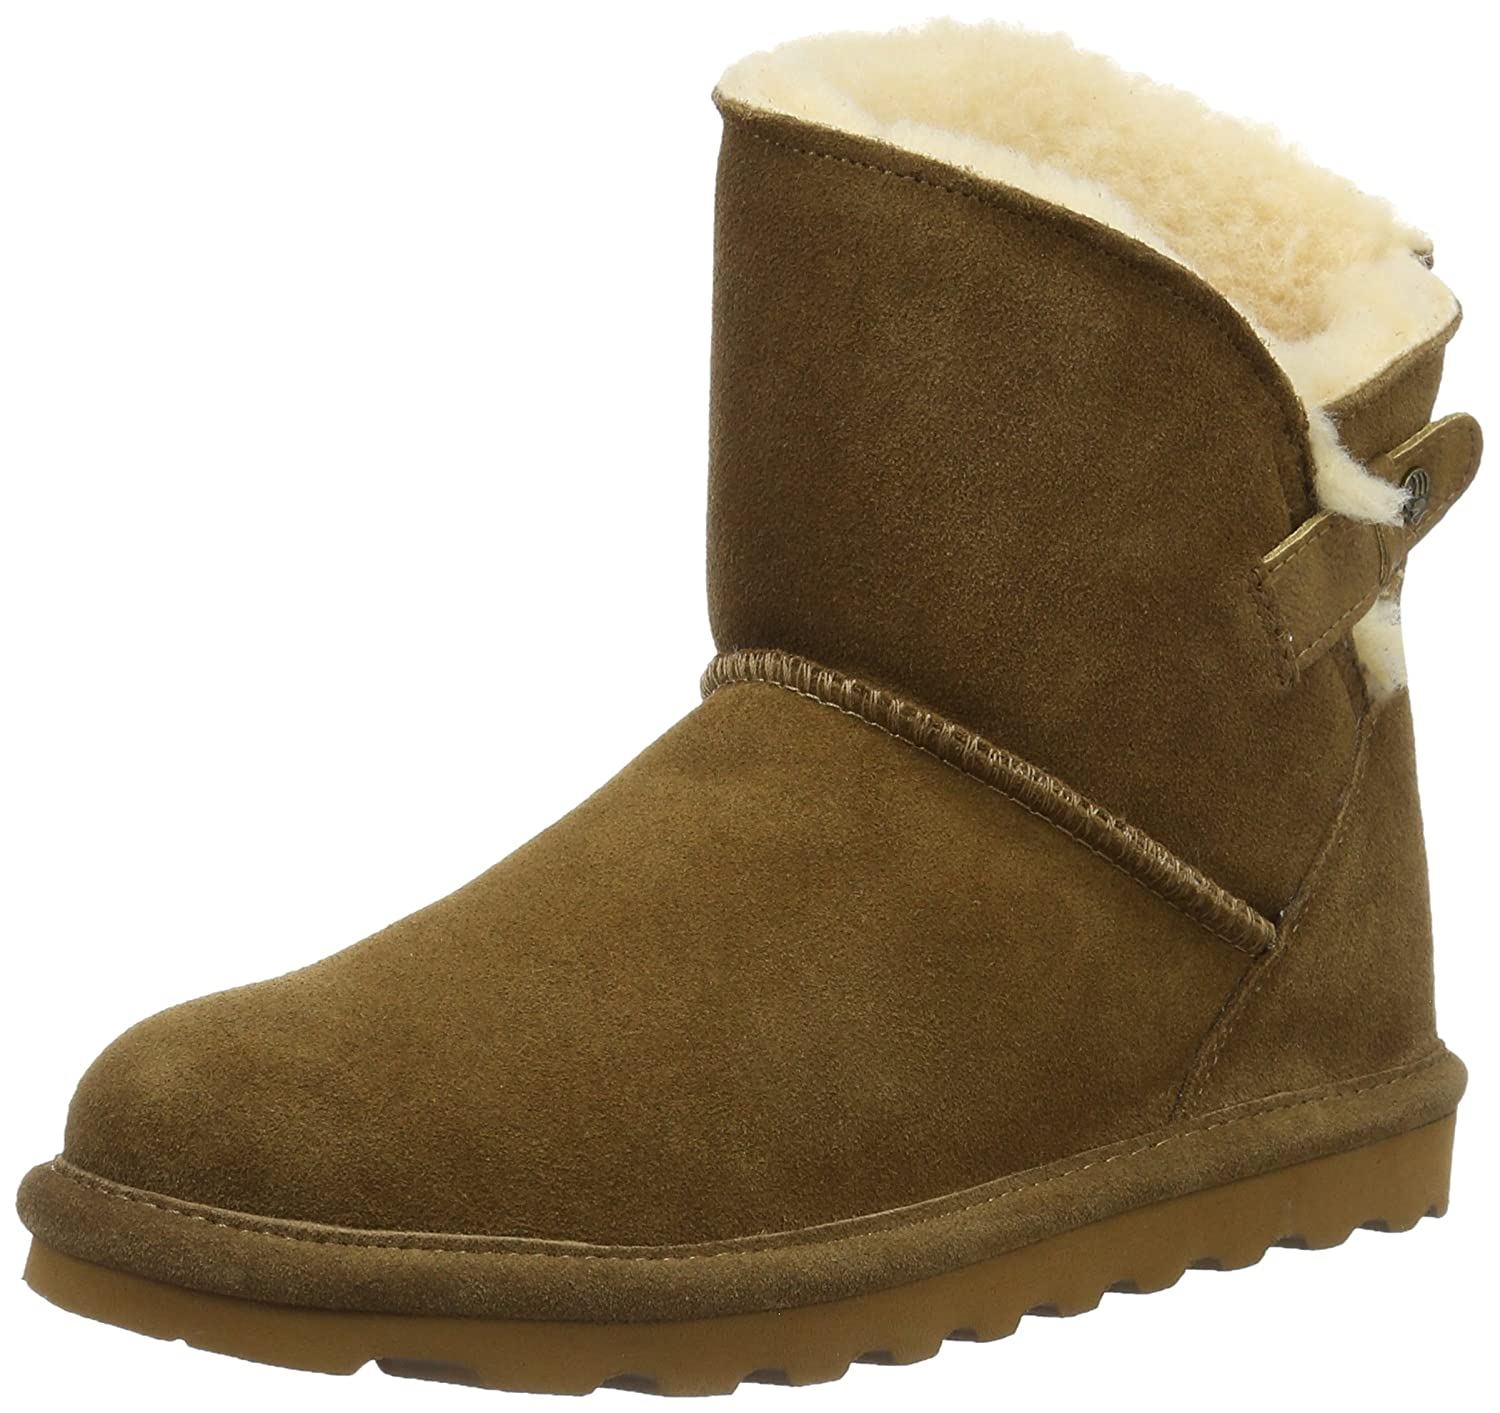 BEARPAW Women's Margaery Fashion Boot B01E4U16WM 8 B(M) US|Hickory